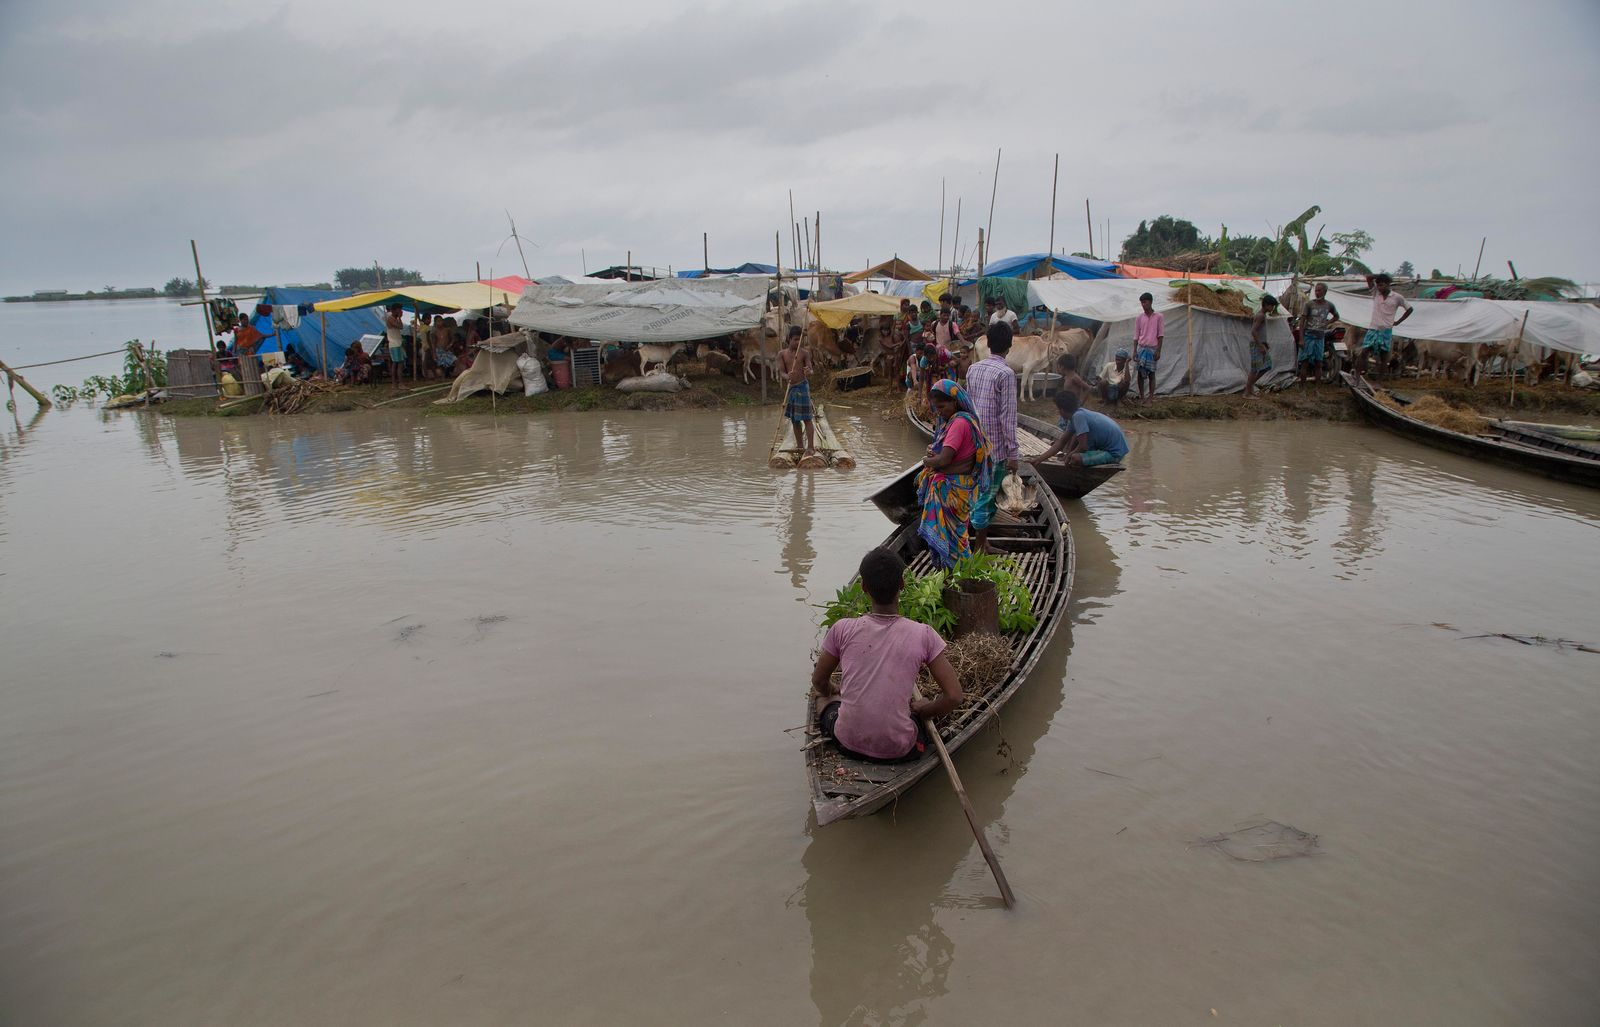 Flood affected villagers travel on a boat as others take shelter on a highland in Katahguri village along the river Brahmaputra, east of Gauhati, India, Sunday, July 14, 2019. Officials in northeastern India said more than a dozen people were killed and over a million affected by flooding. Rain-triggered floods, mudslides and lightning have left a trail of destruction in other parts of South Asia. (AP Photo/Anupam Nath)